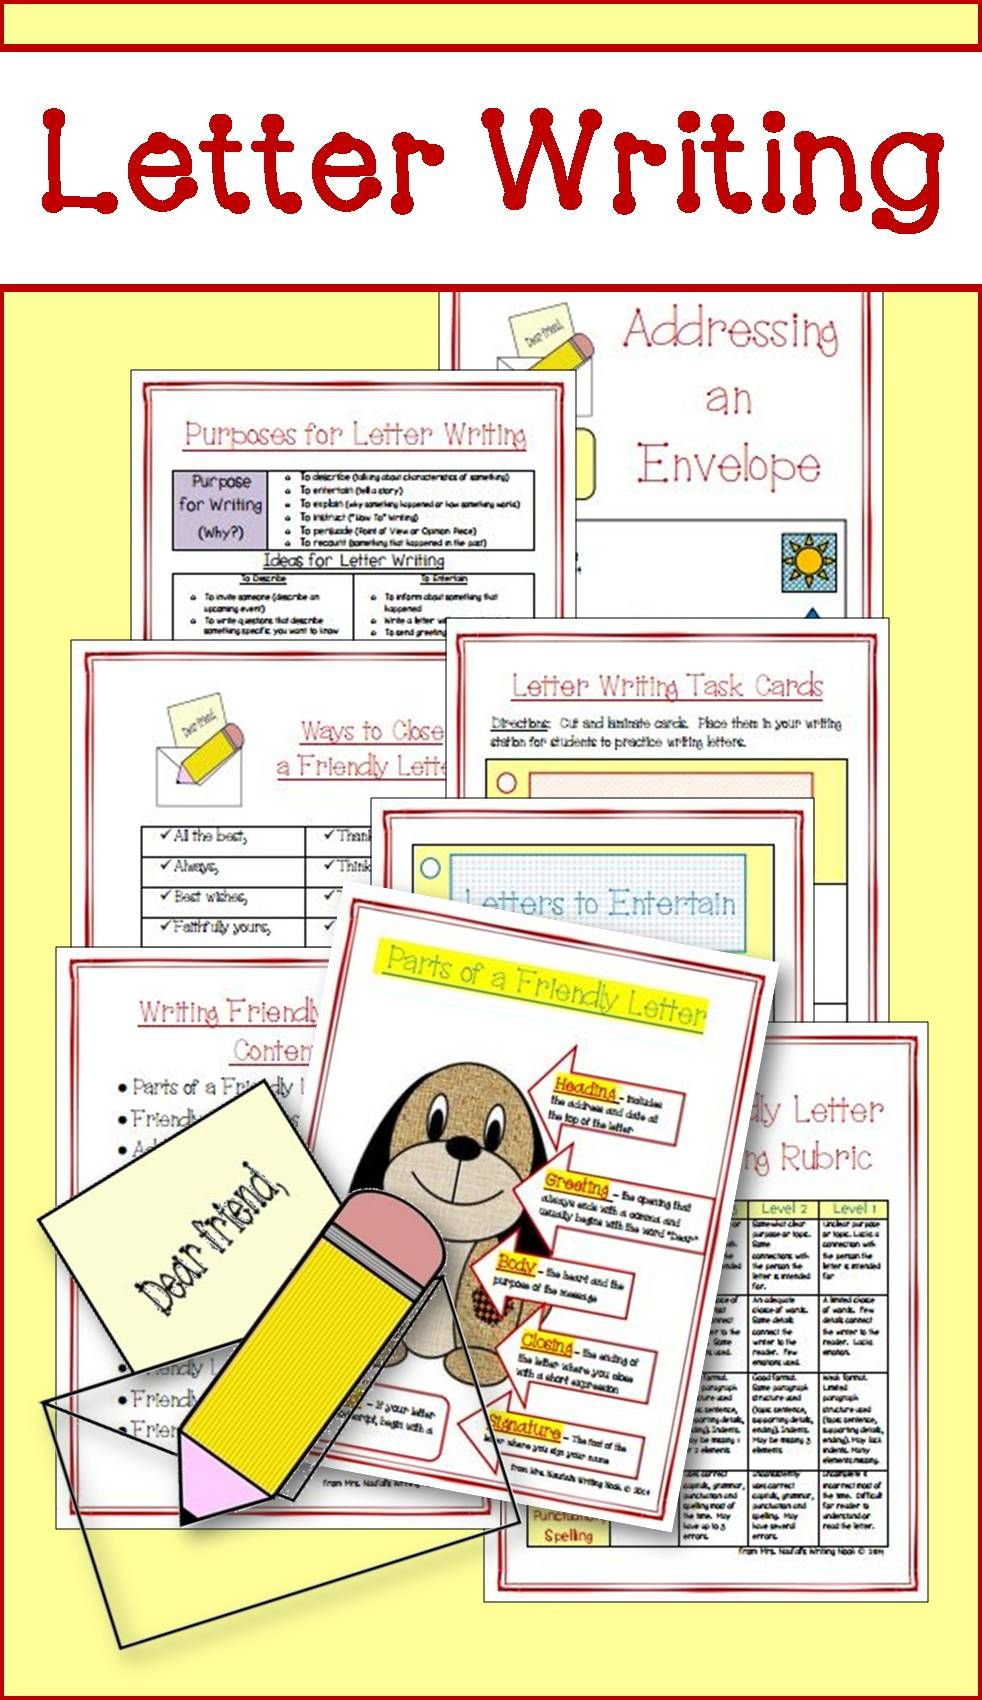 Are You Looking For A Jam Packed Resource On How To Teach Friendly Letter Writing This Reso Friendly Letter Writing Writing Graphic Organizers Friendly Letter [ 1700 x 982 Pixel ]